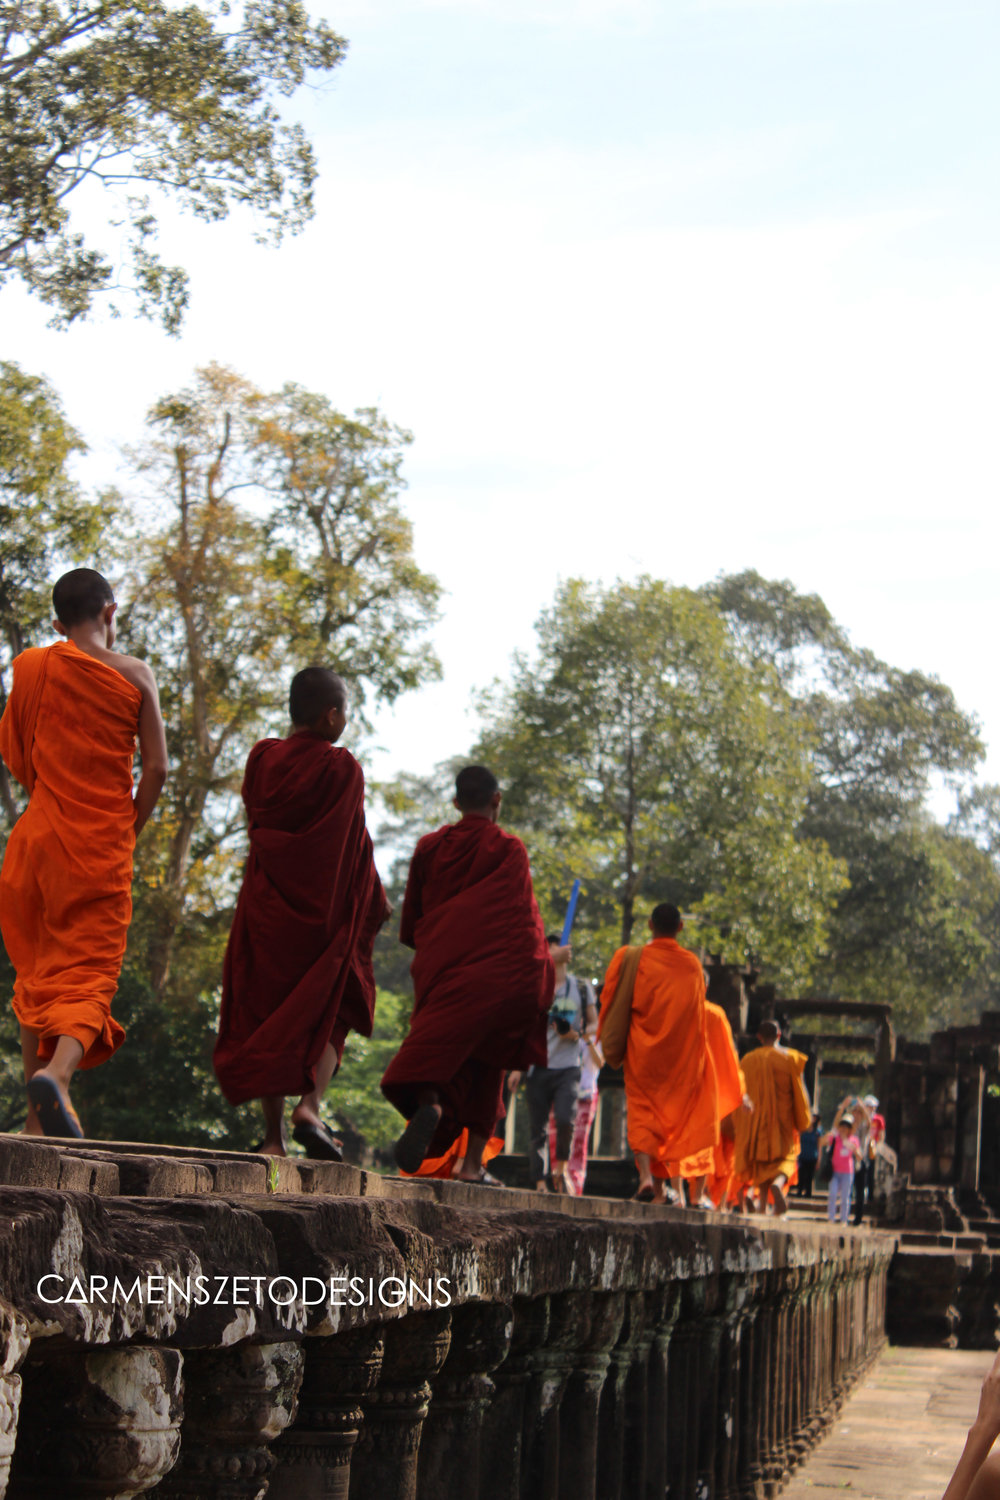 Monks in Angkor Thom, Cambodia